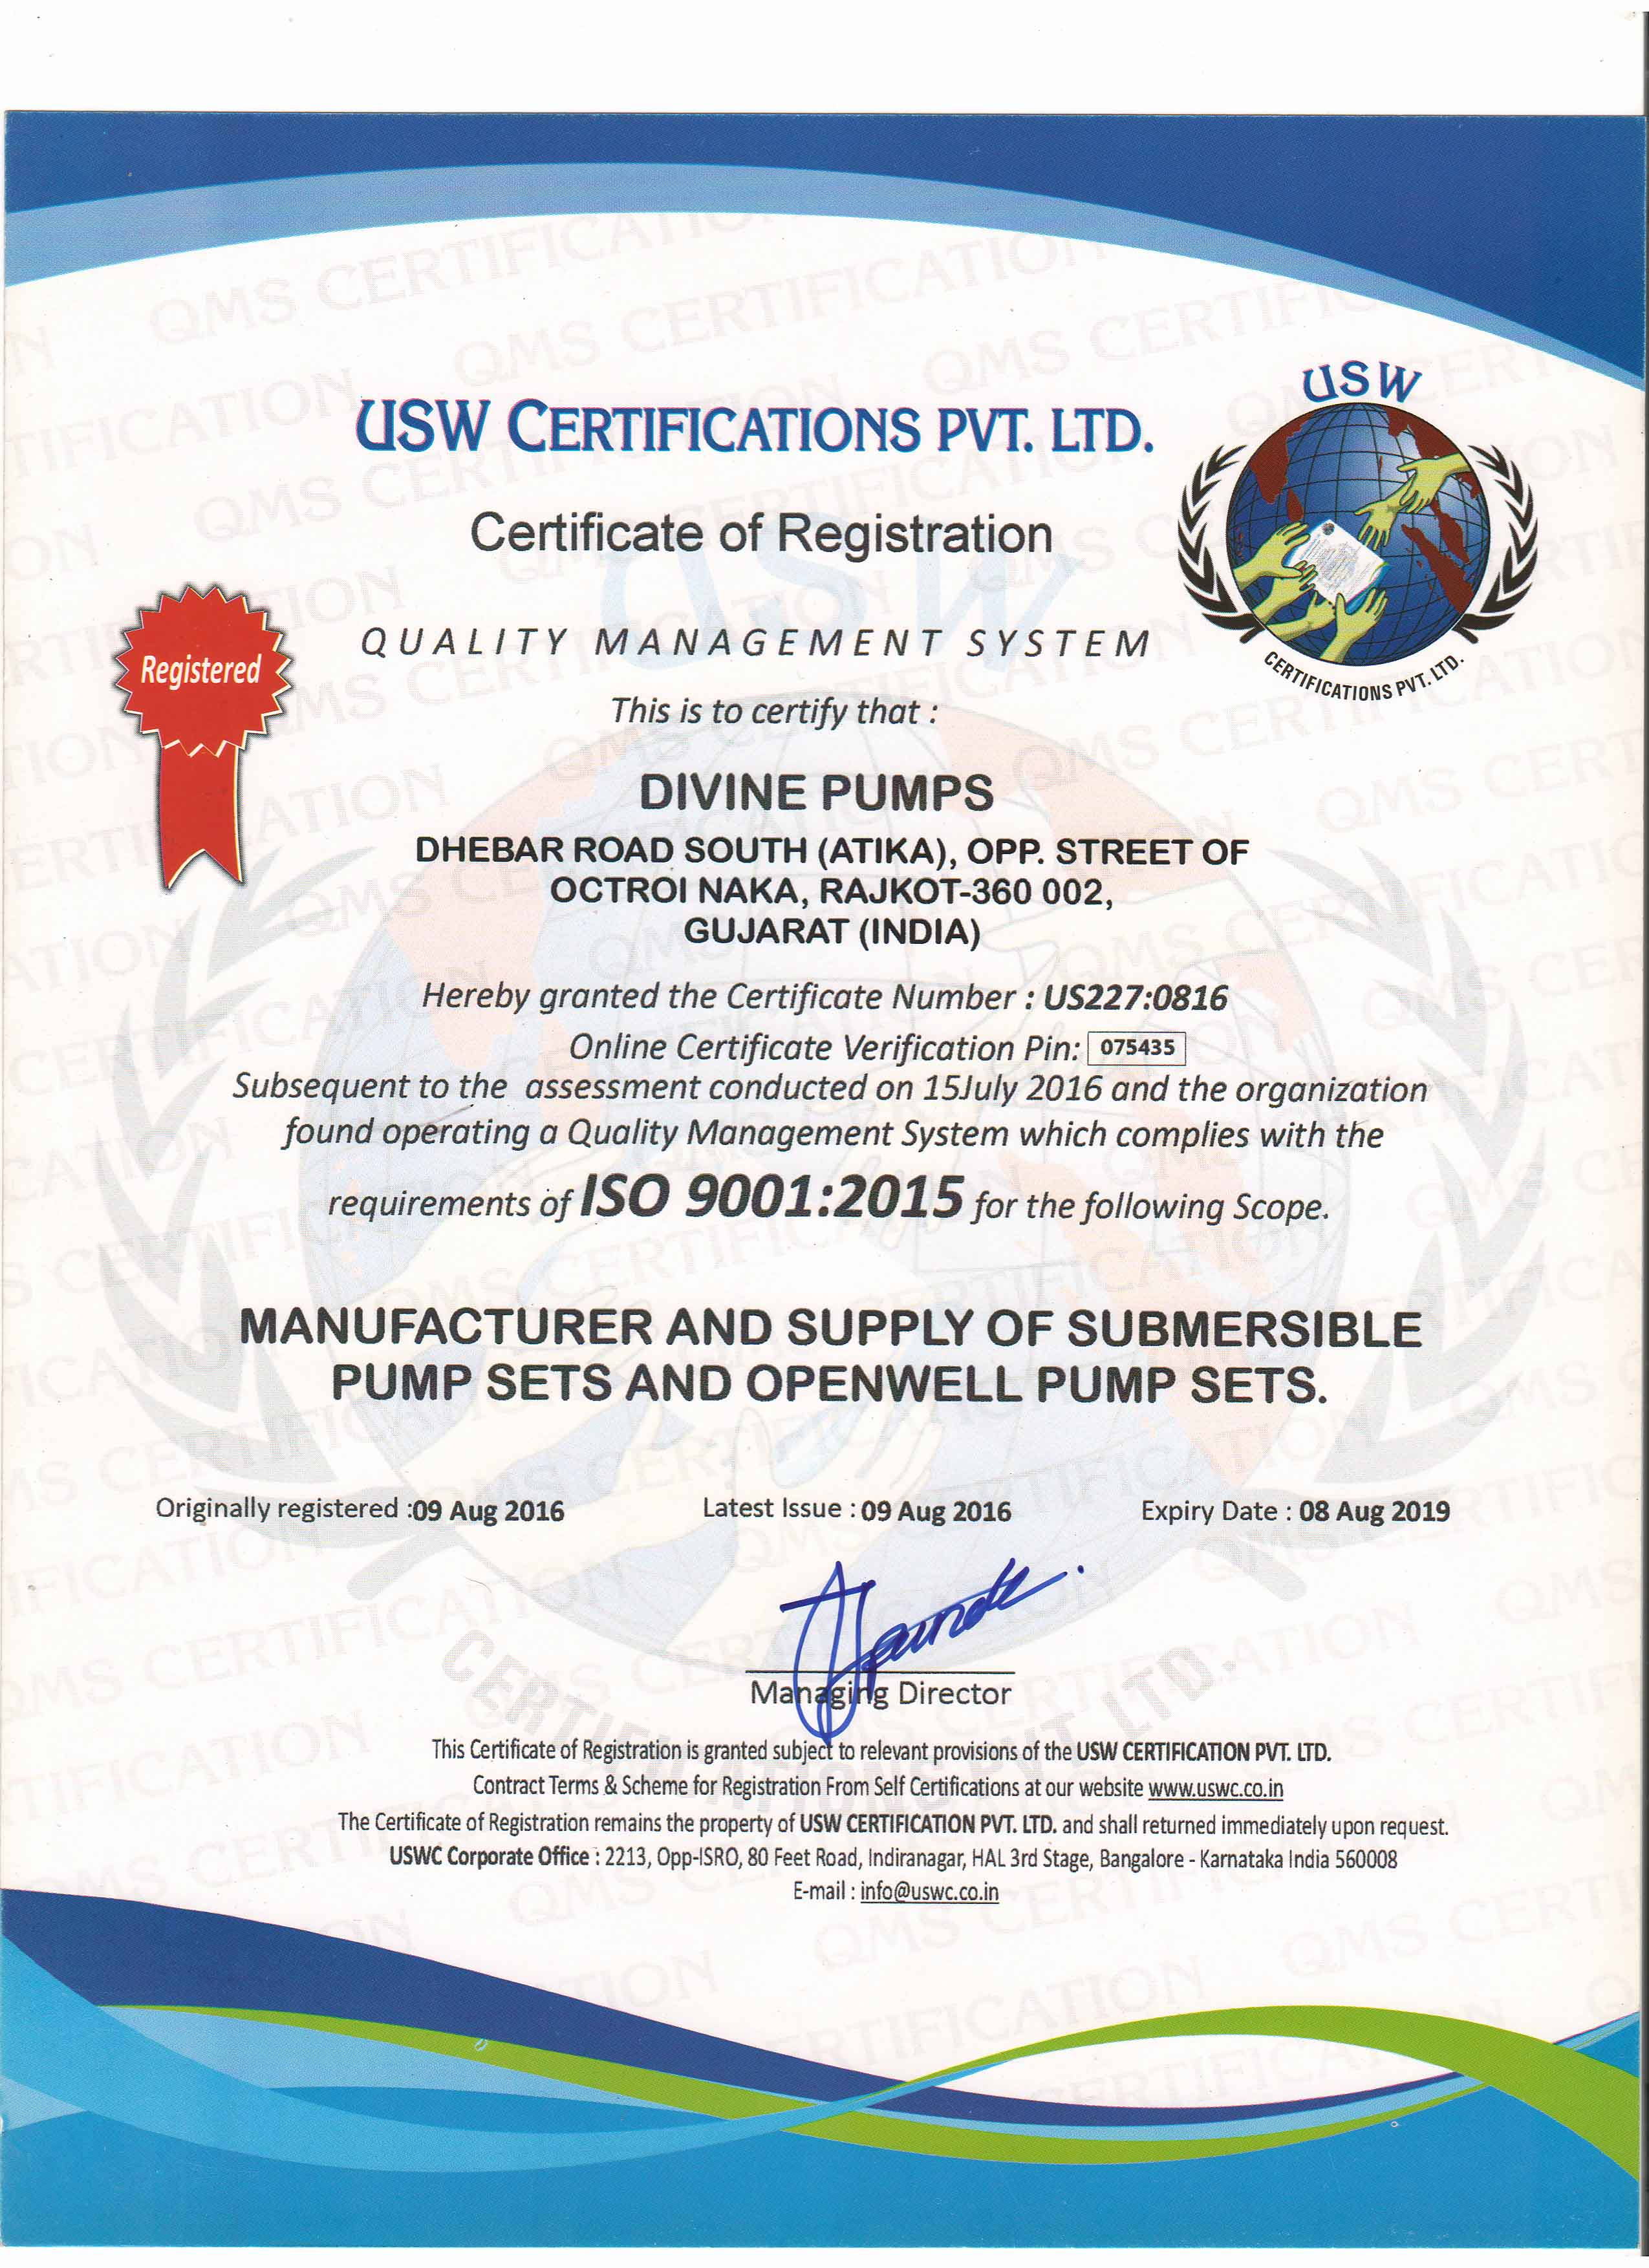 INTERNATIONAL STANDARDS ORGANIZATION CERTIFICATE